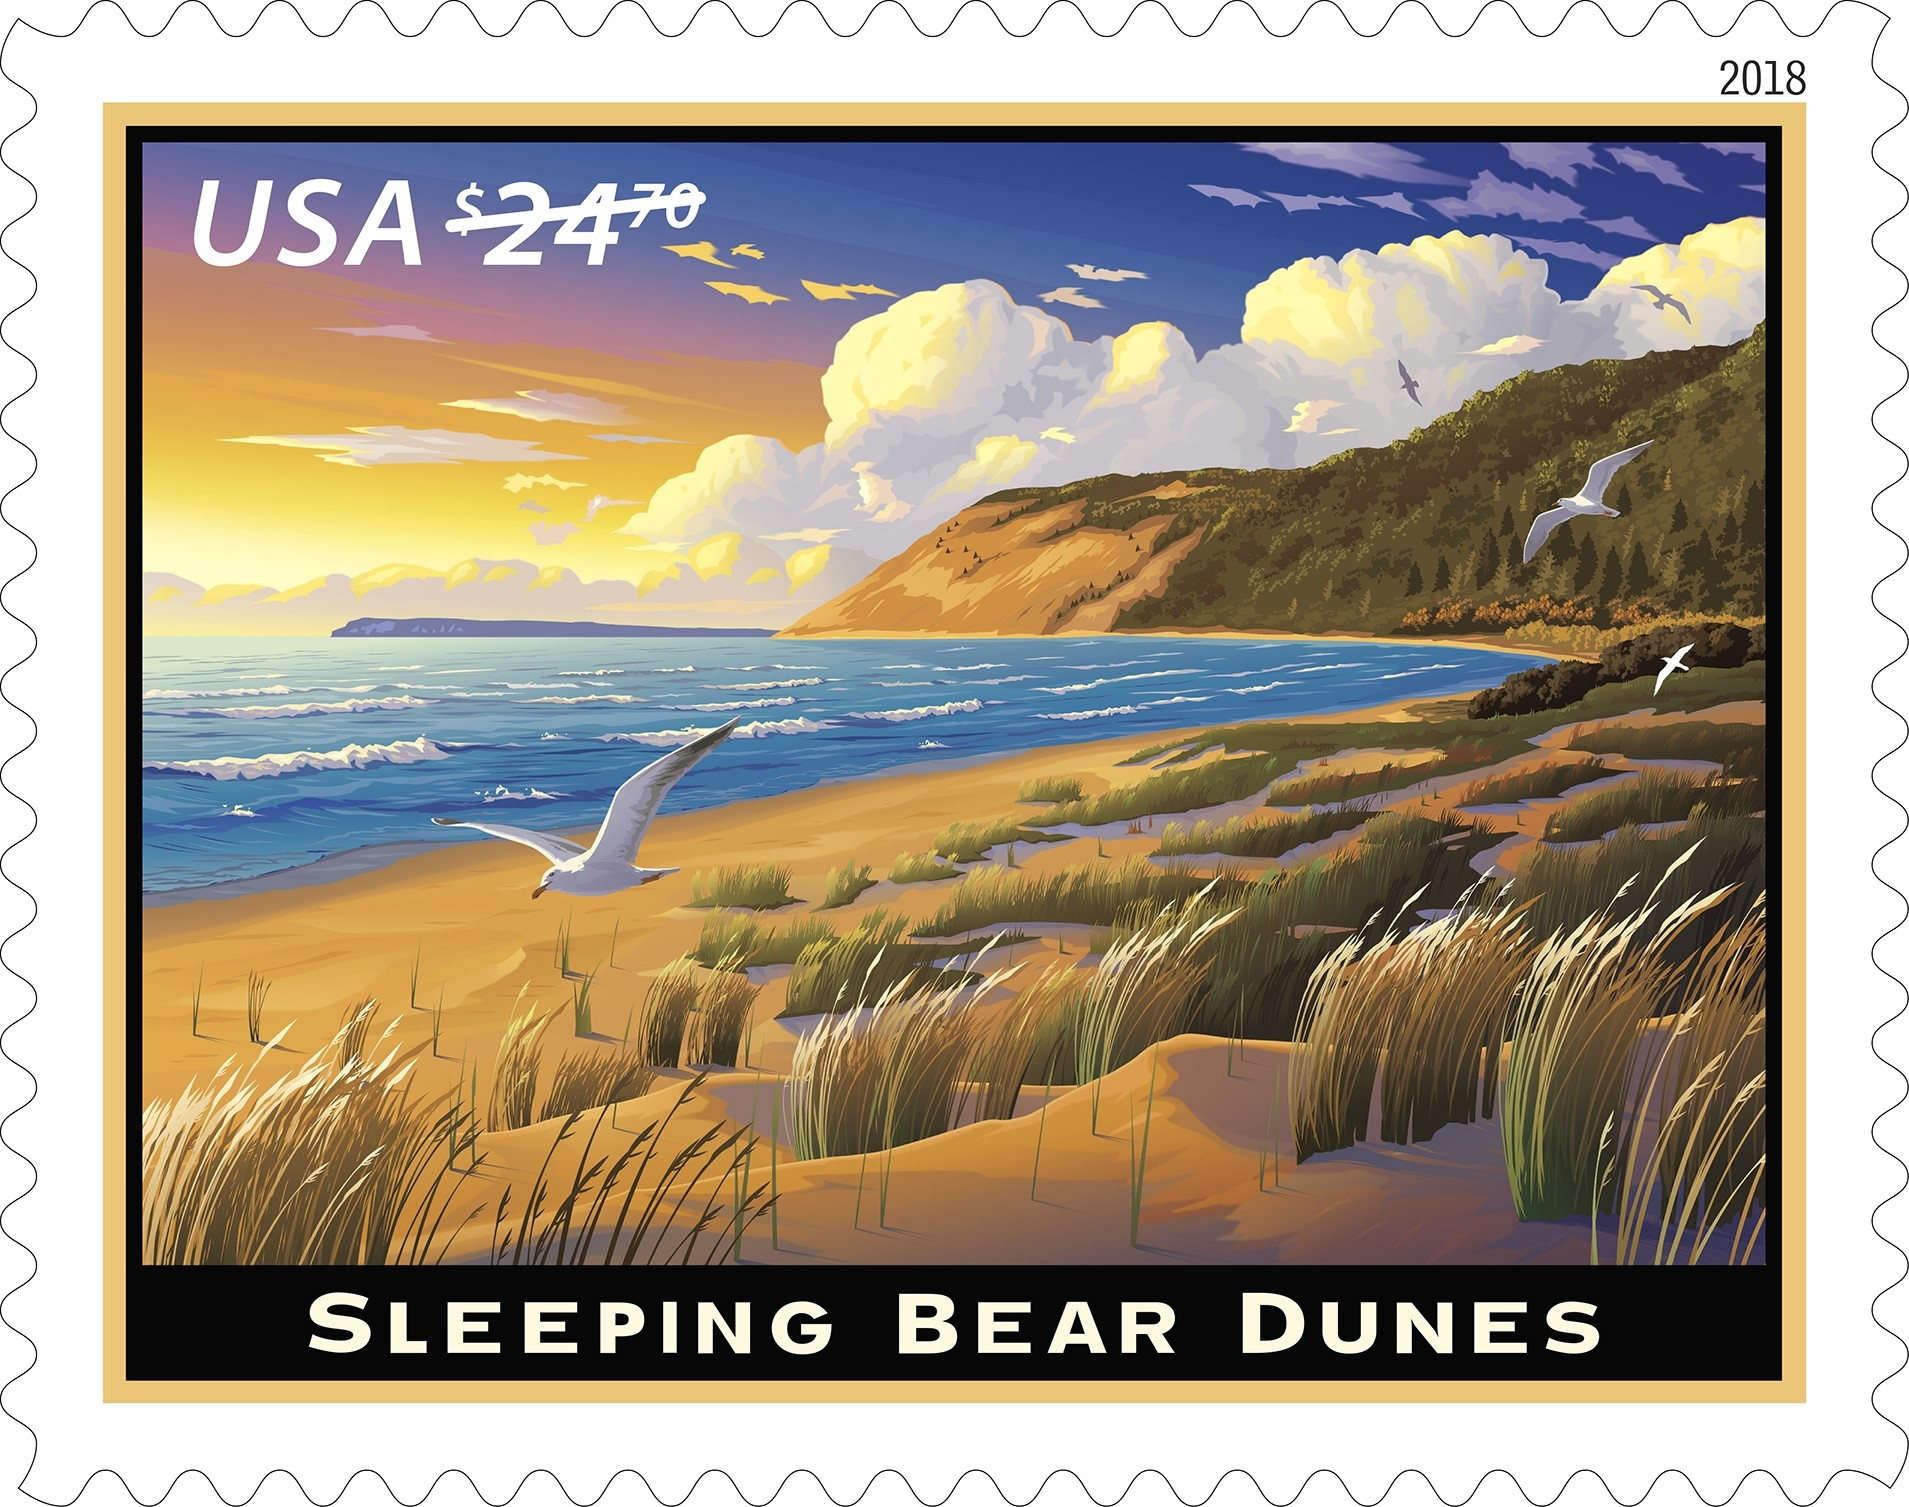 United States - 2018-01-21 Sleeping Bear Dunes - $24.70 Priority Mail Express rate stamp